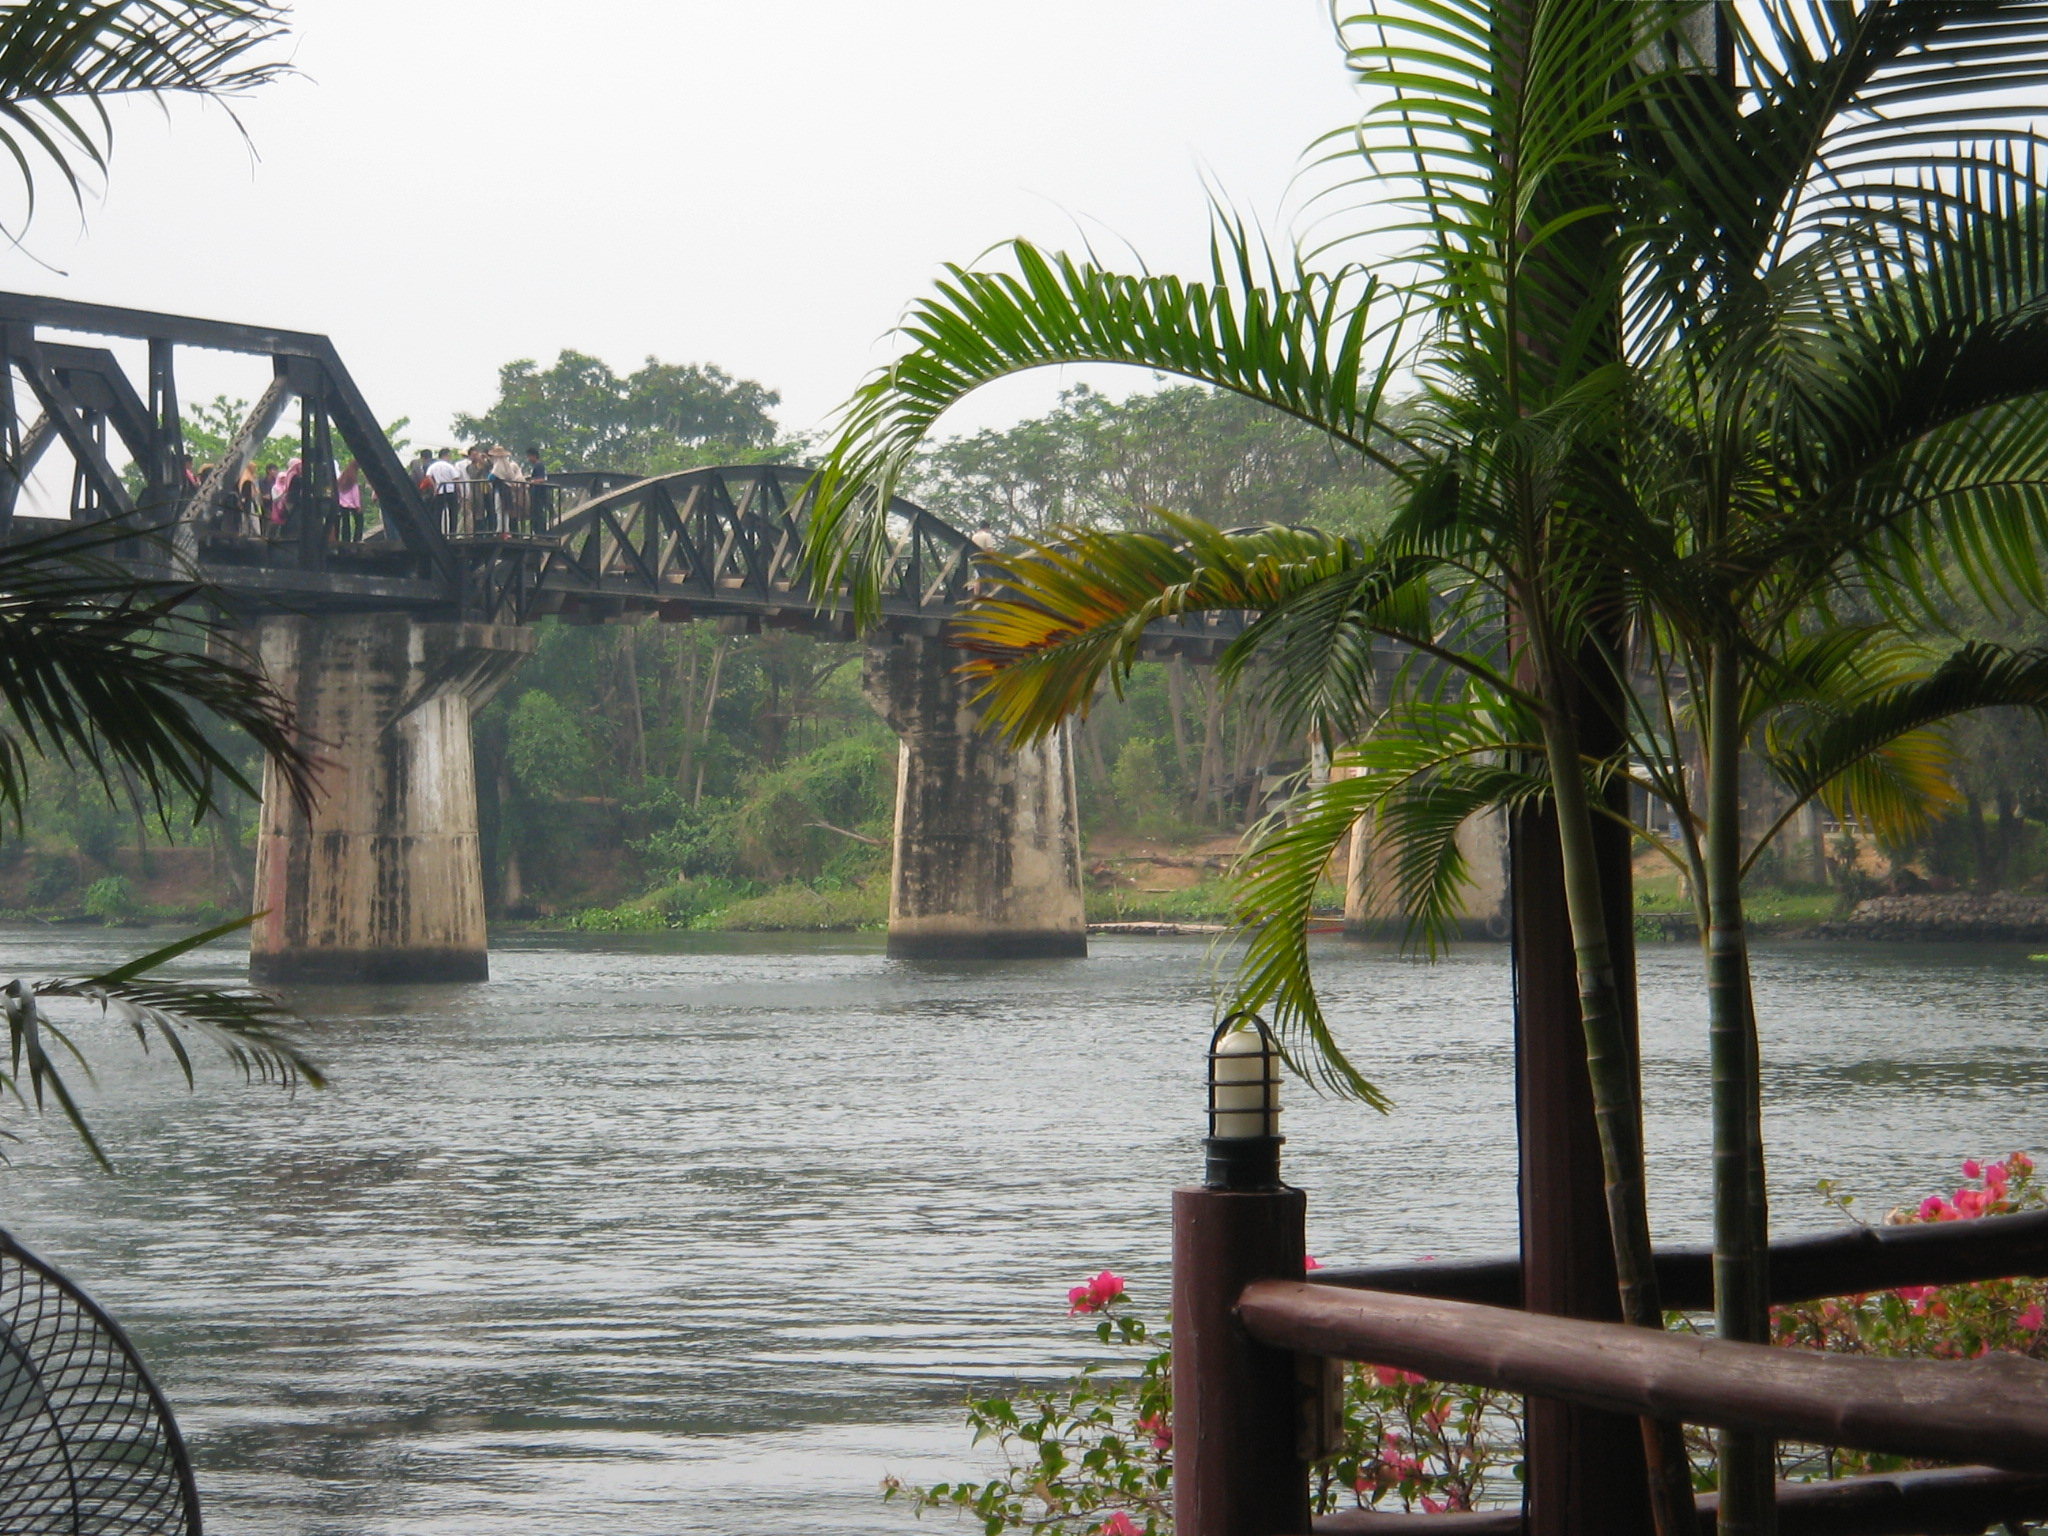 The Bridge of River Kwai, Kanchanapuri